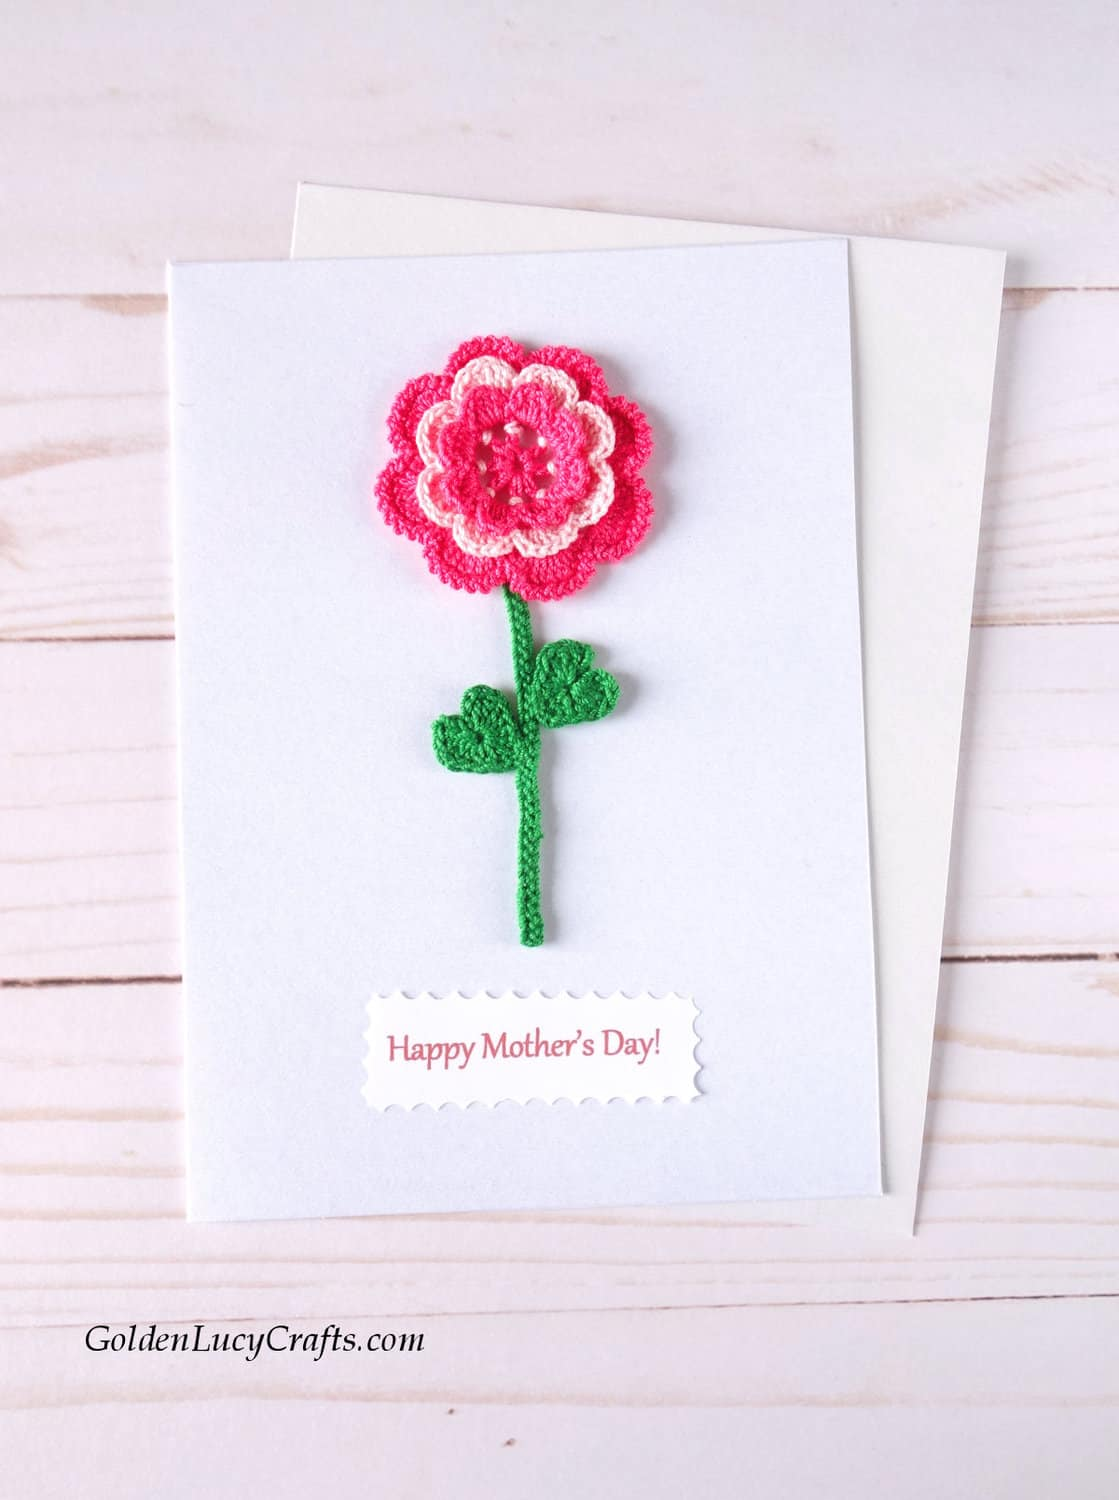 Mother's Day handmade card with crochet flower applique.